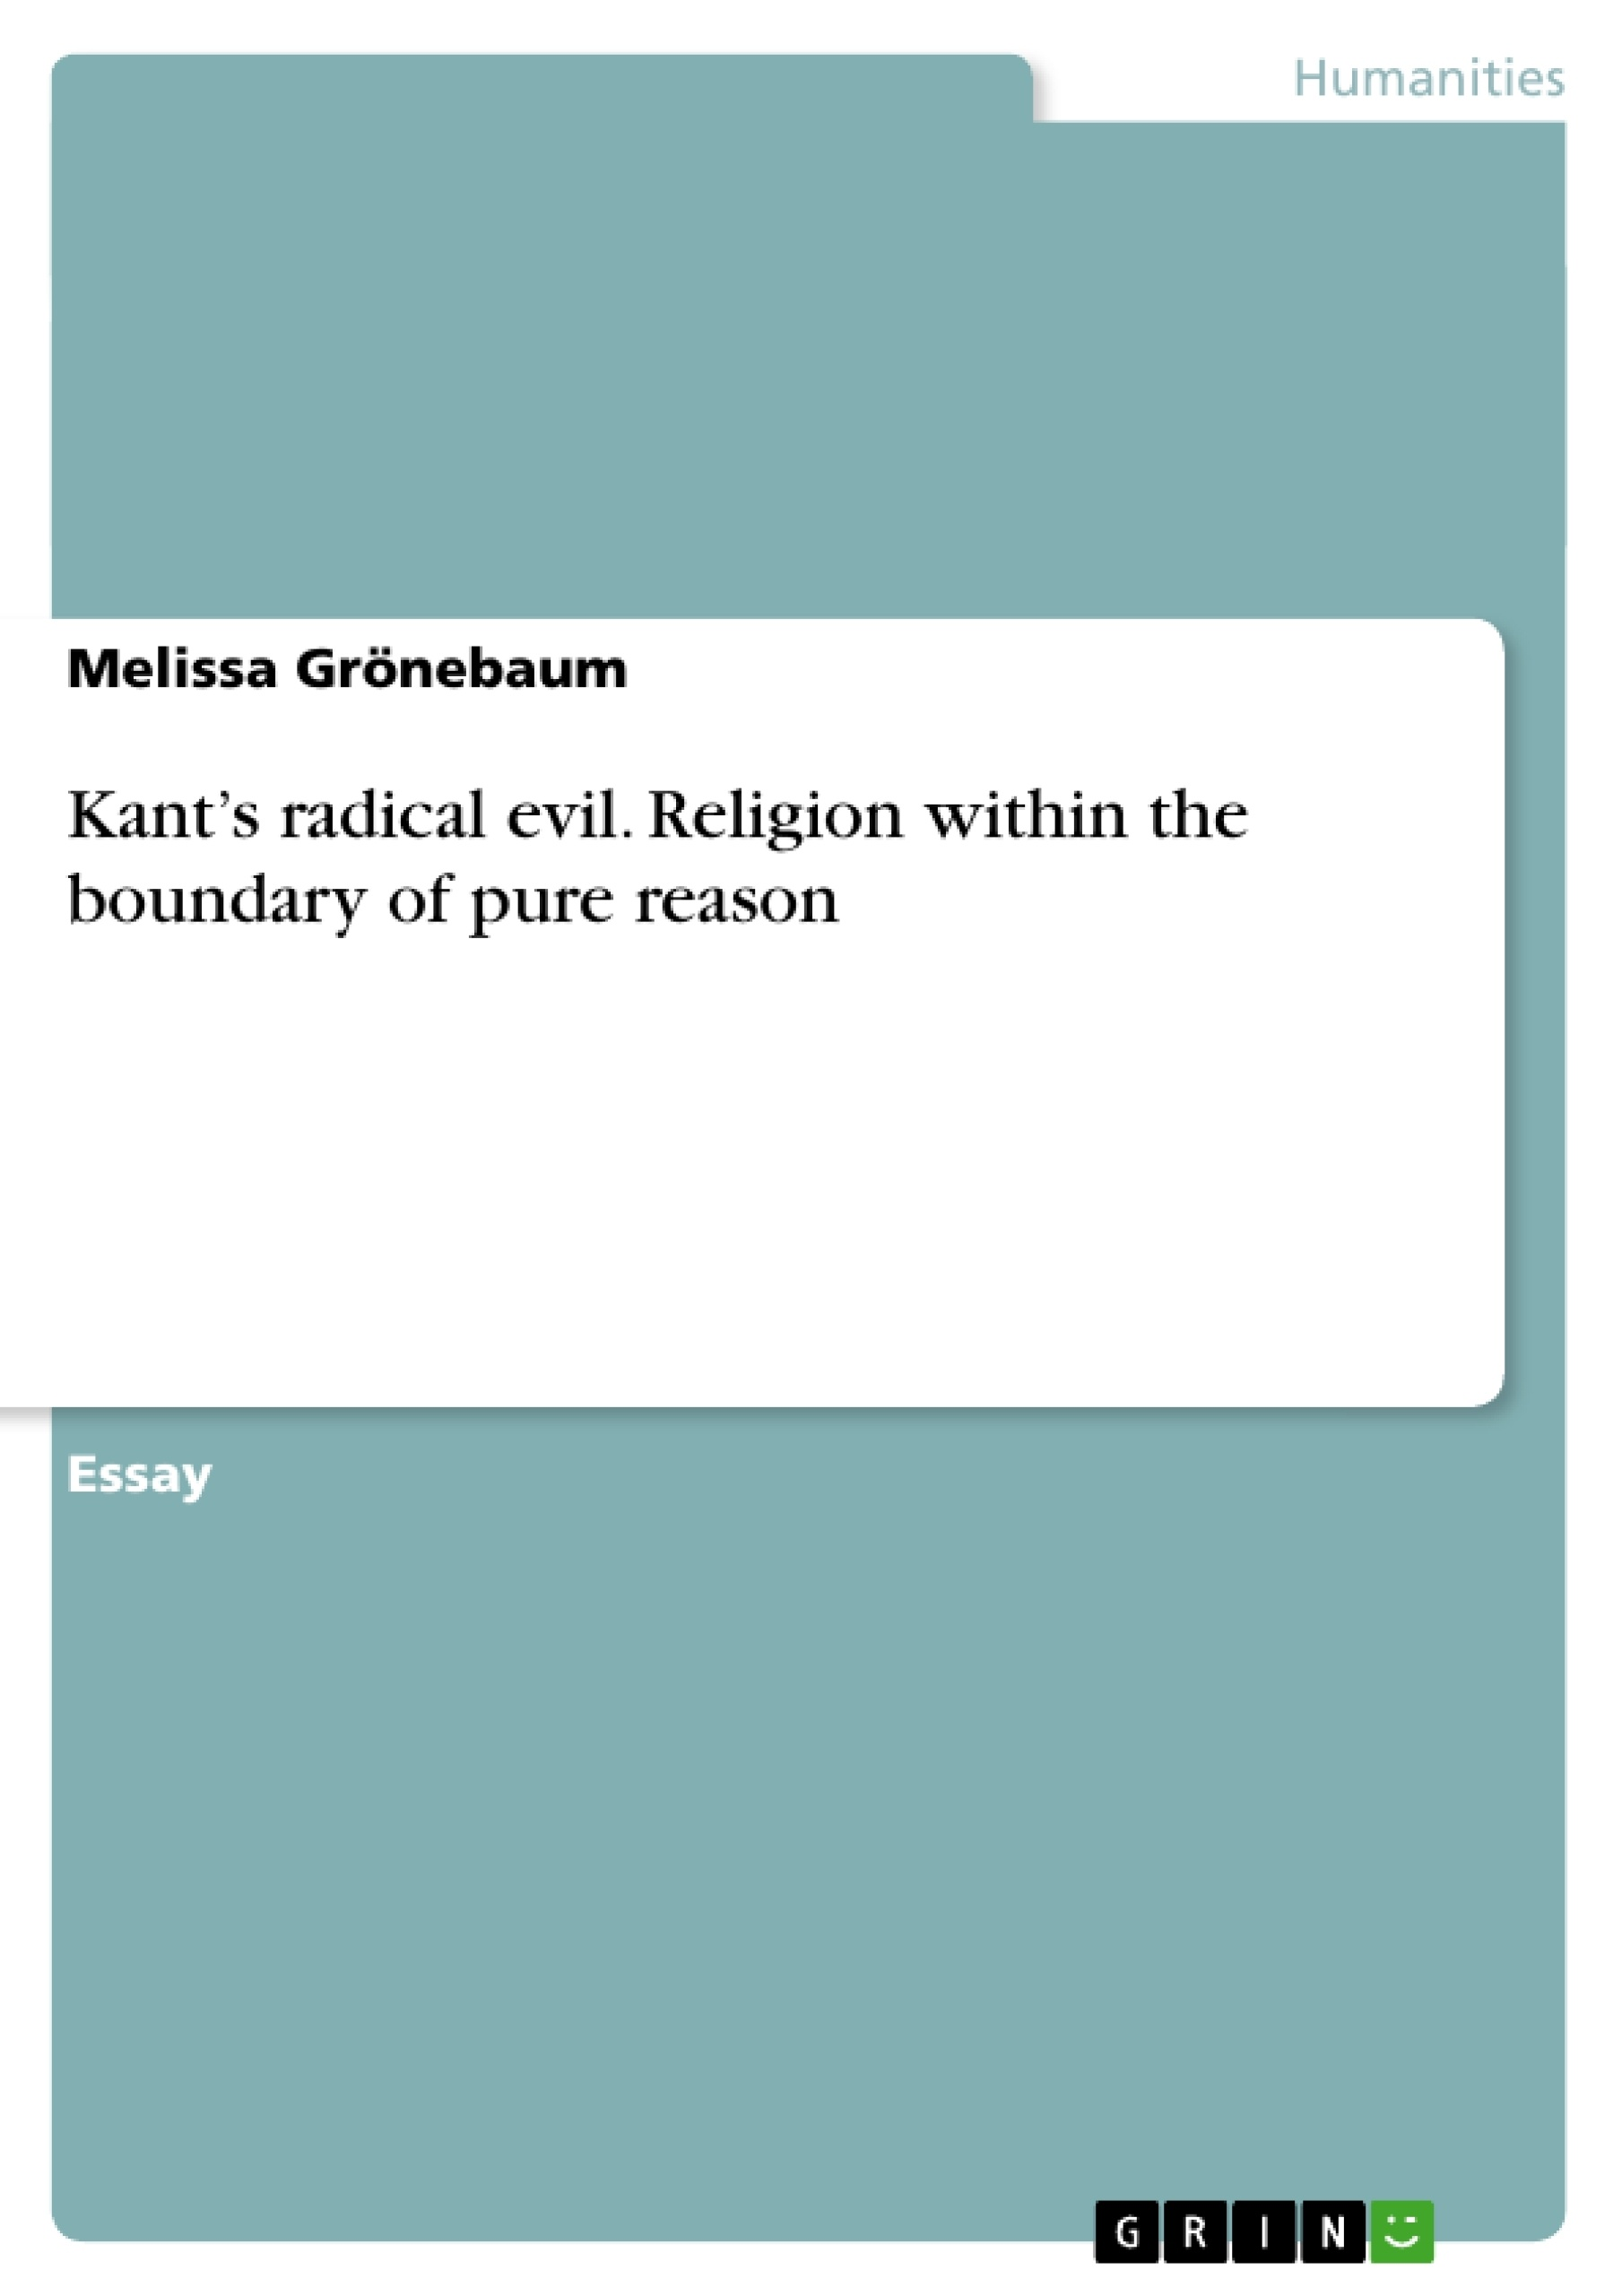 Title: Kant's radical evil. Religion within the boundary of pure reason